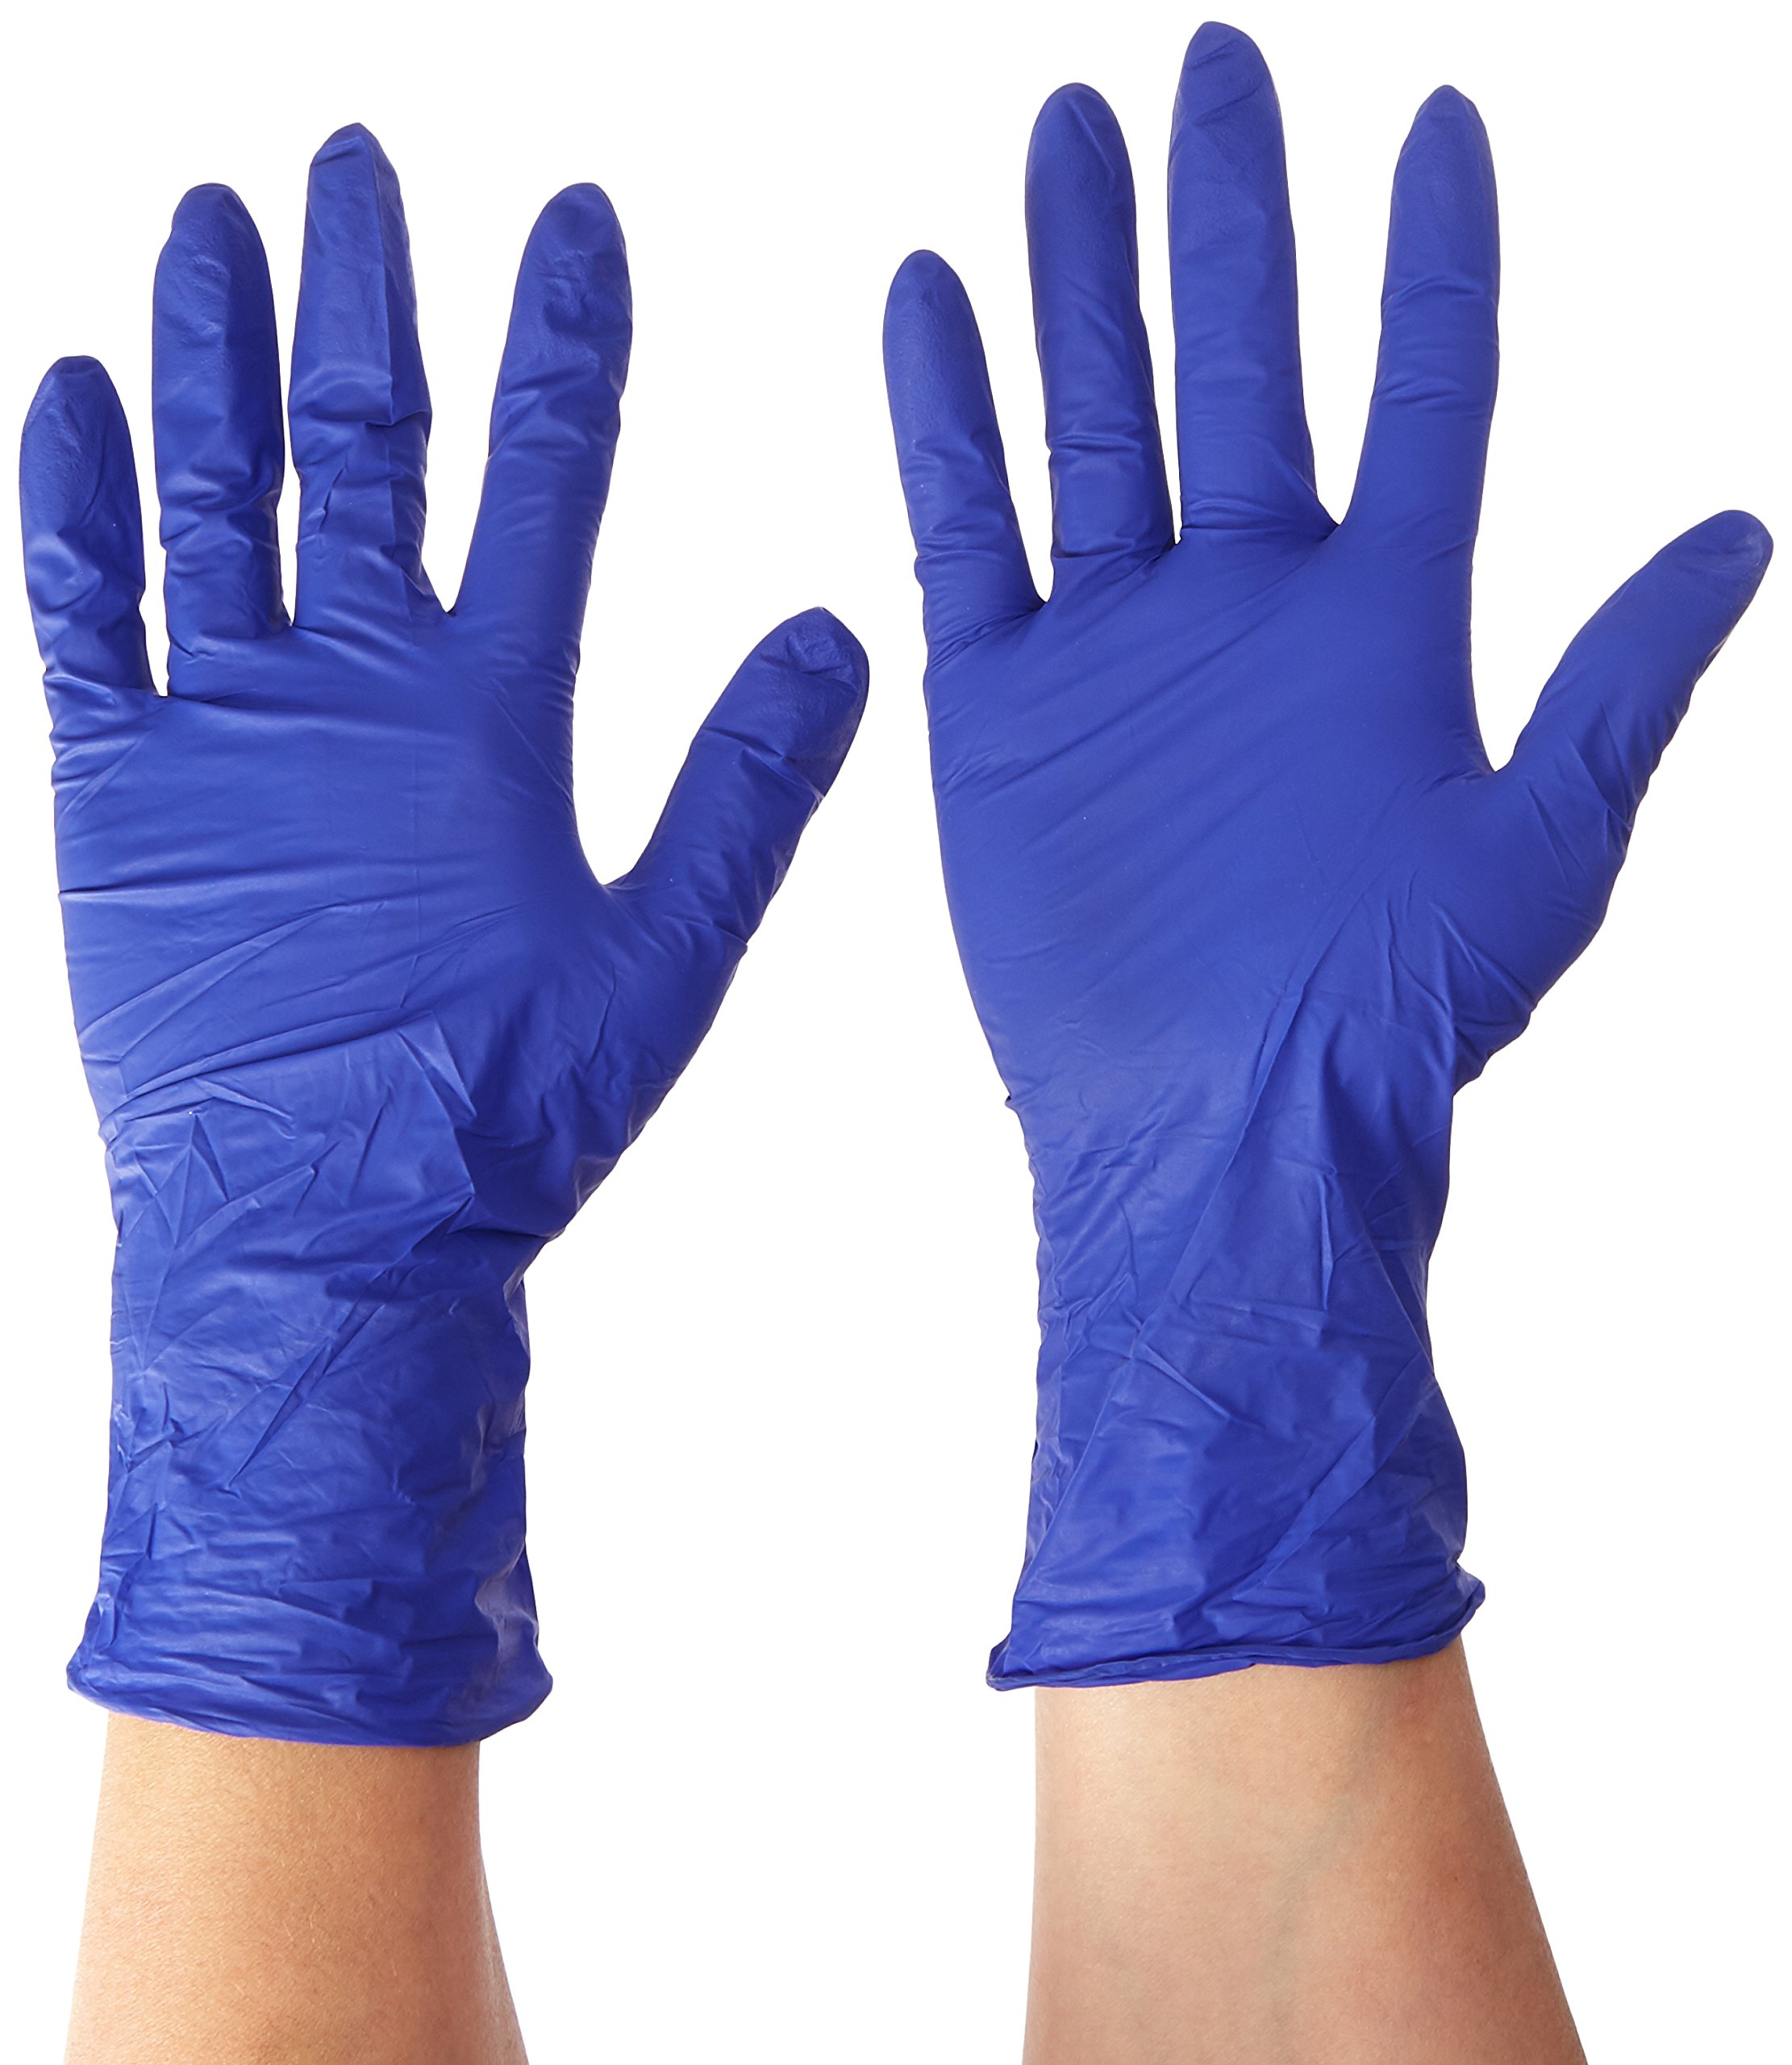 Dynarex Dynaplus Economy Nitrile Gloves, Small, 200 Count